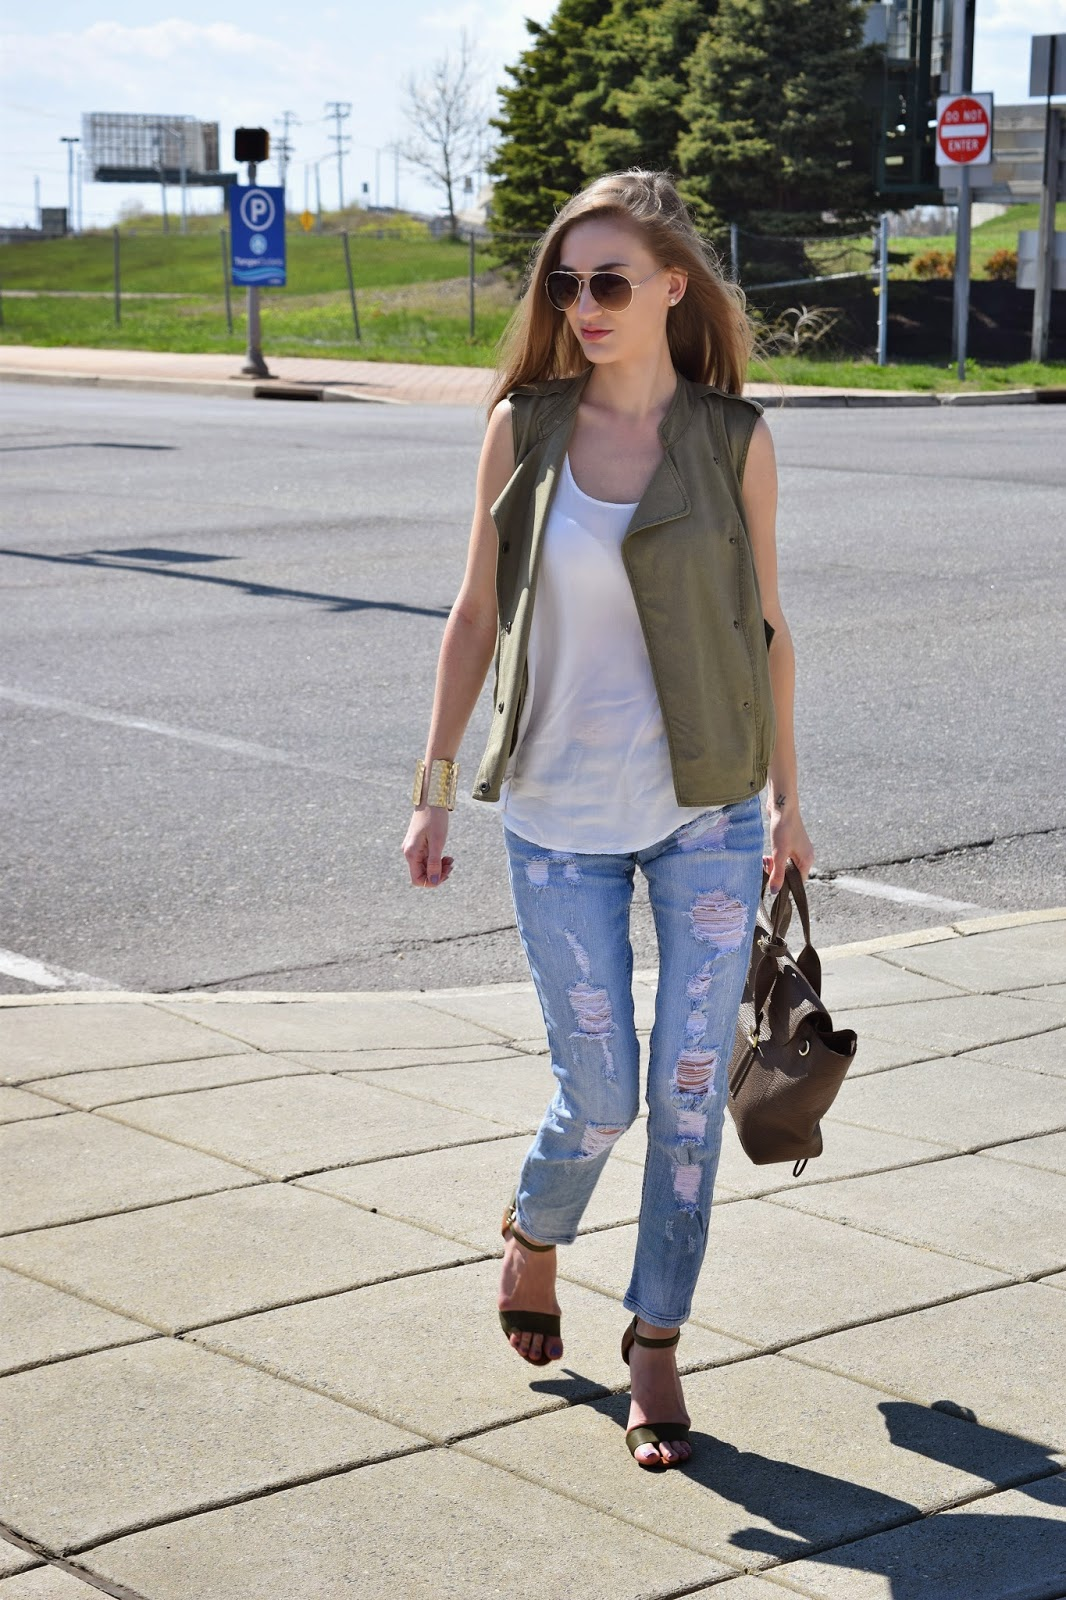 Wearing Nordstrom Sun and Shadow Drapey Denim Vest, Nordstrom STS Blue destroyed denim jeans, Shop Prima Donna Two Tone Ankle Strap Heels, Weekend Casual Look